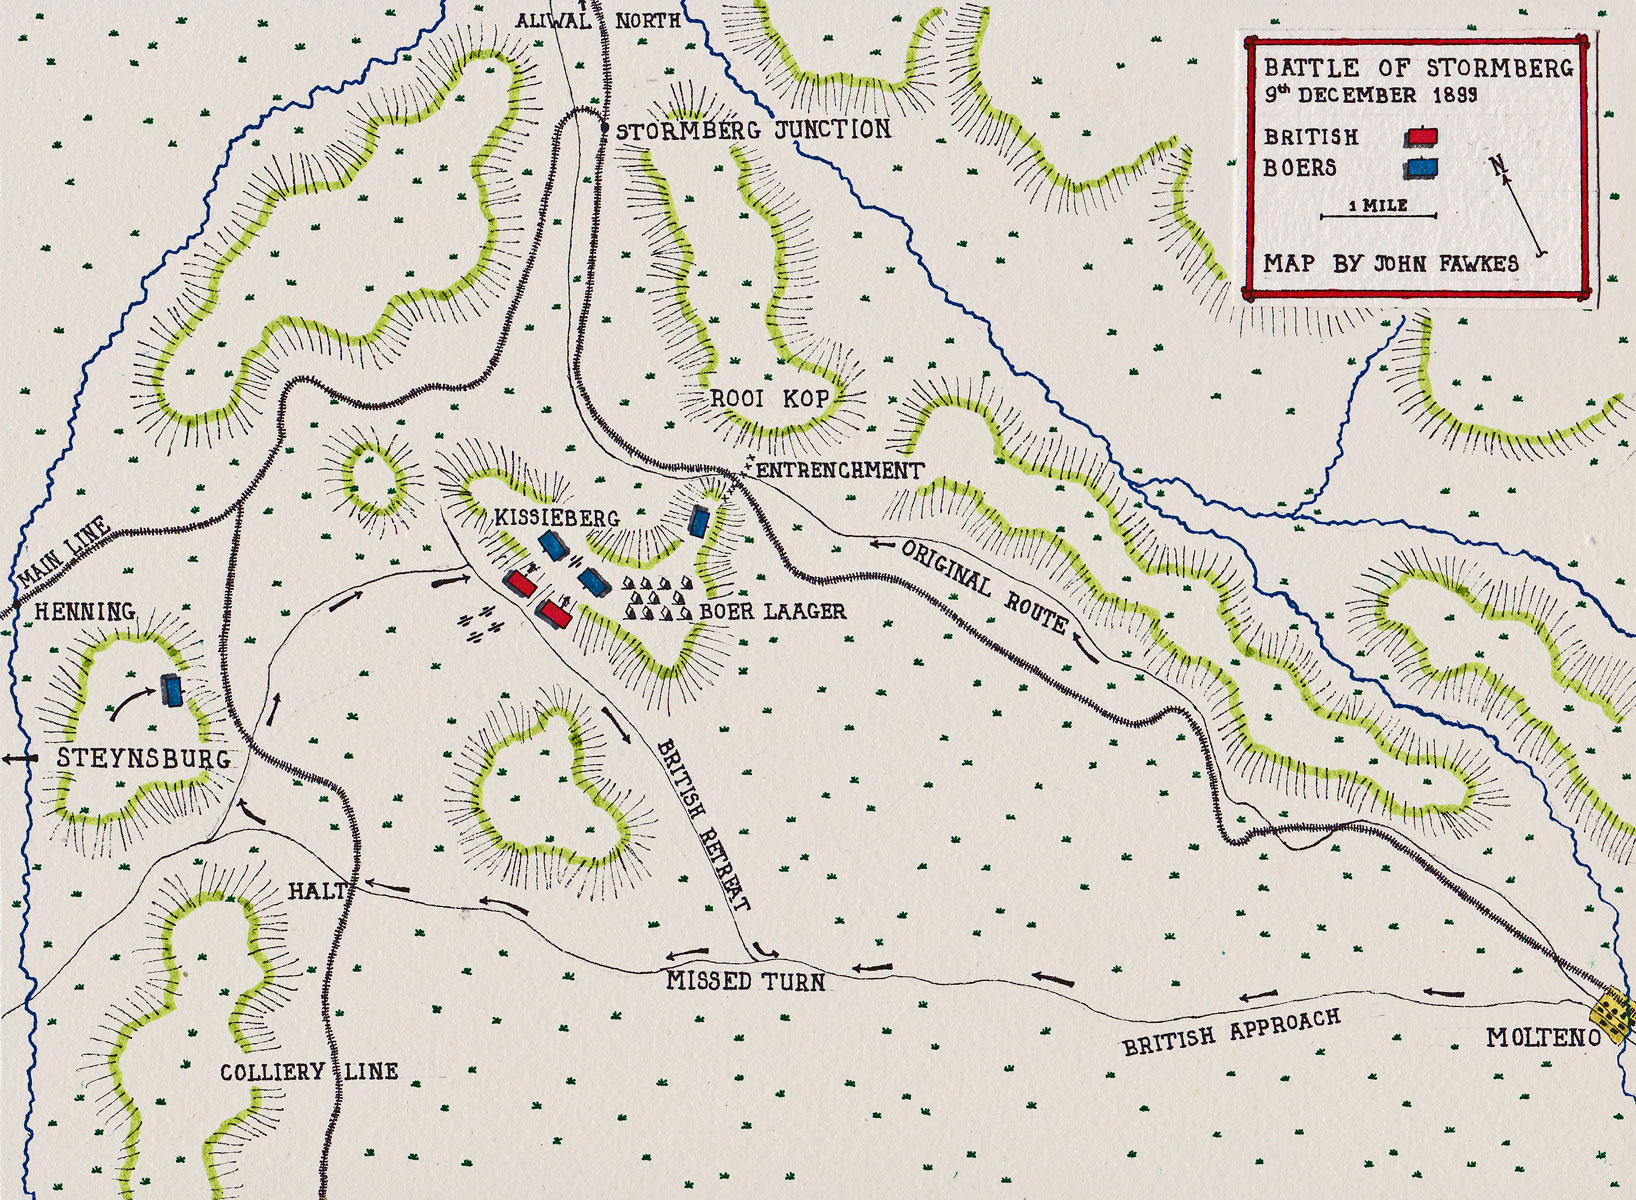 Battle of Stormberg on 9th and 10th December 1899 in the Boer War: map by John Fawkes